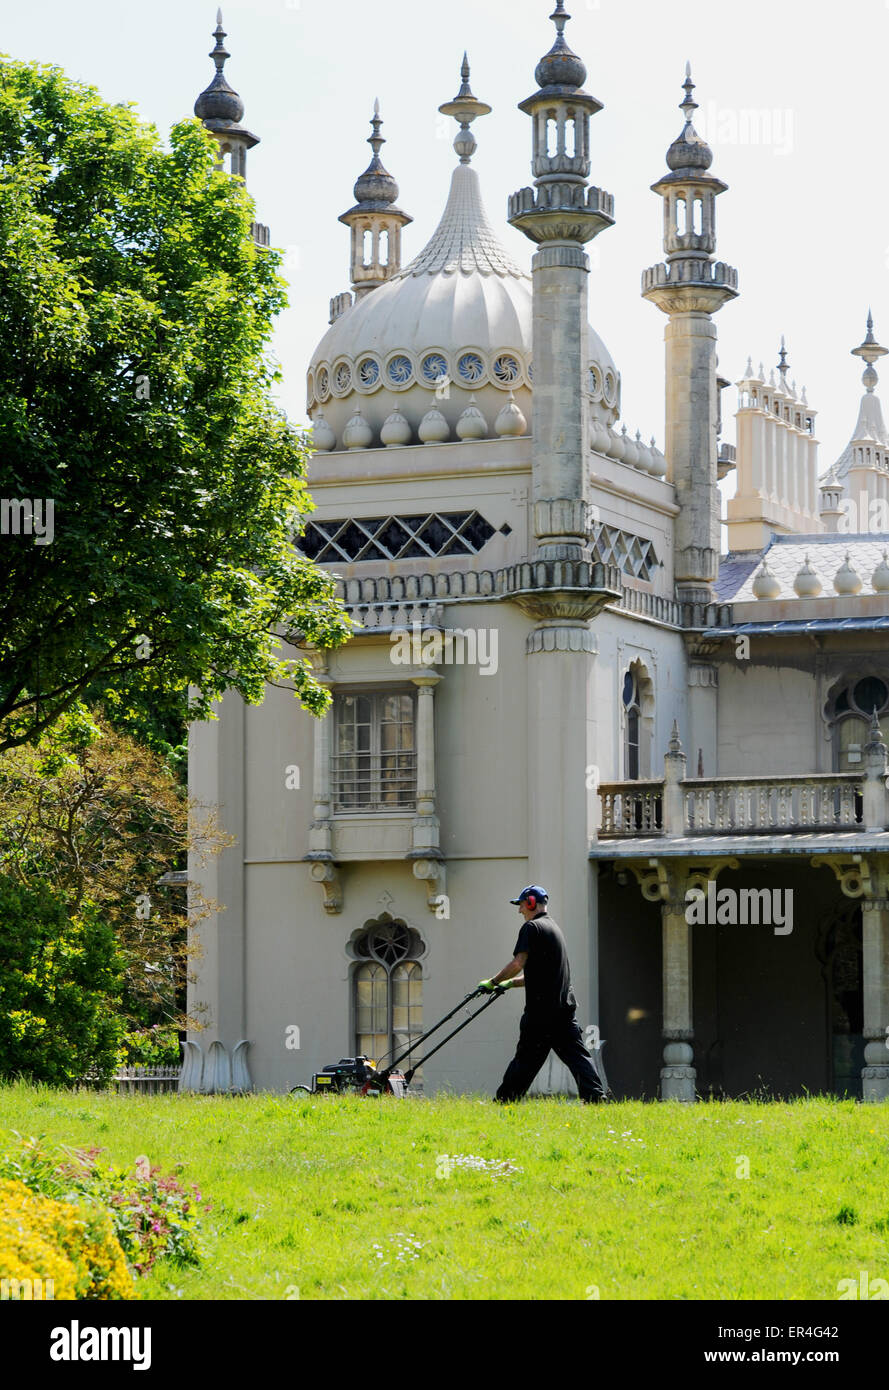 Brighton UK 27th May 2015 - Robert Hill-Snook the head gardener at Brighton's Royal Pavilion Gardens mowing the Stock Photo